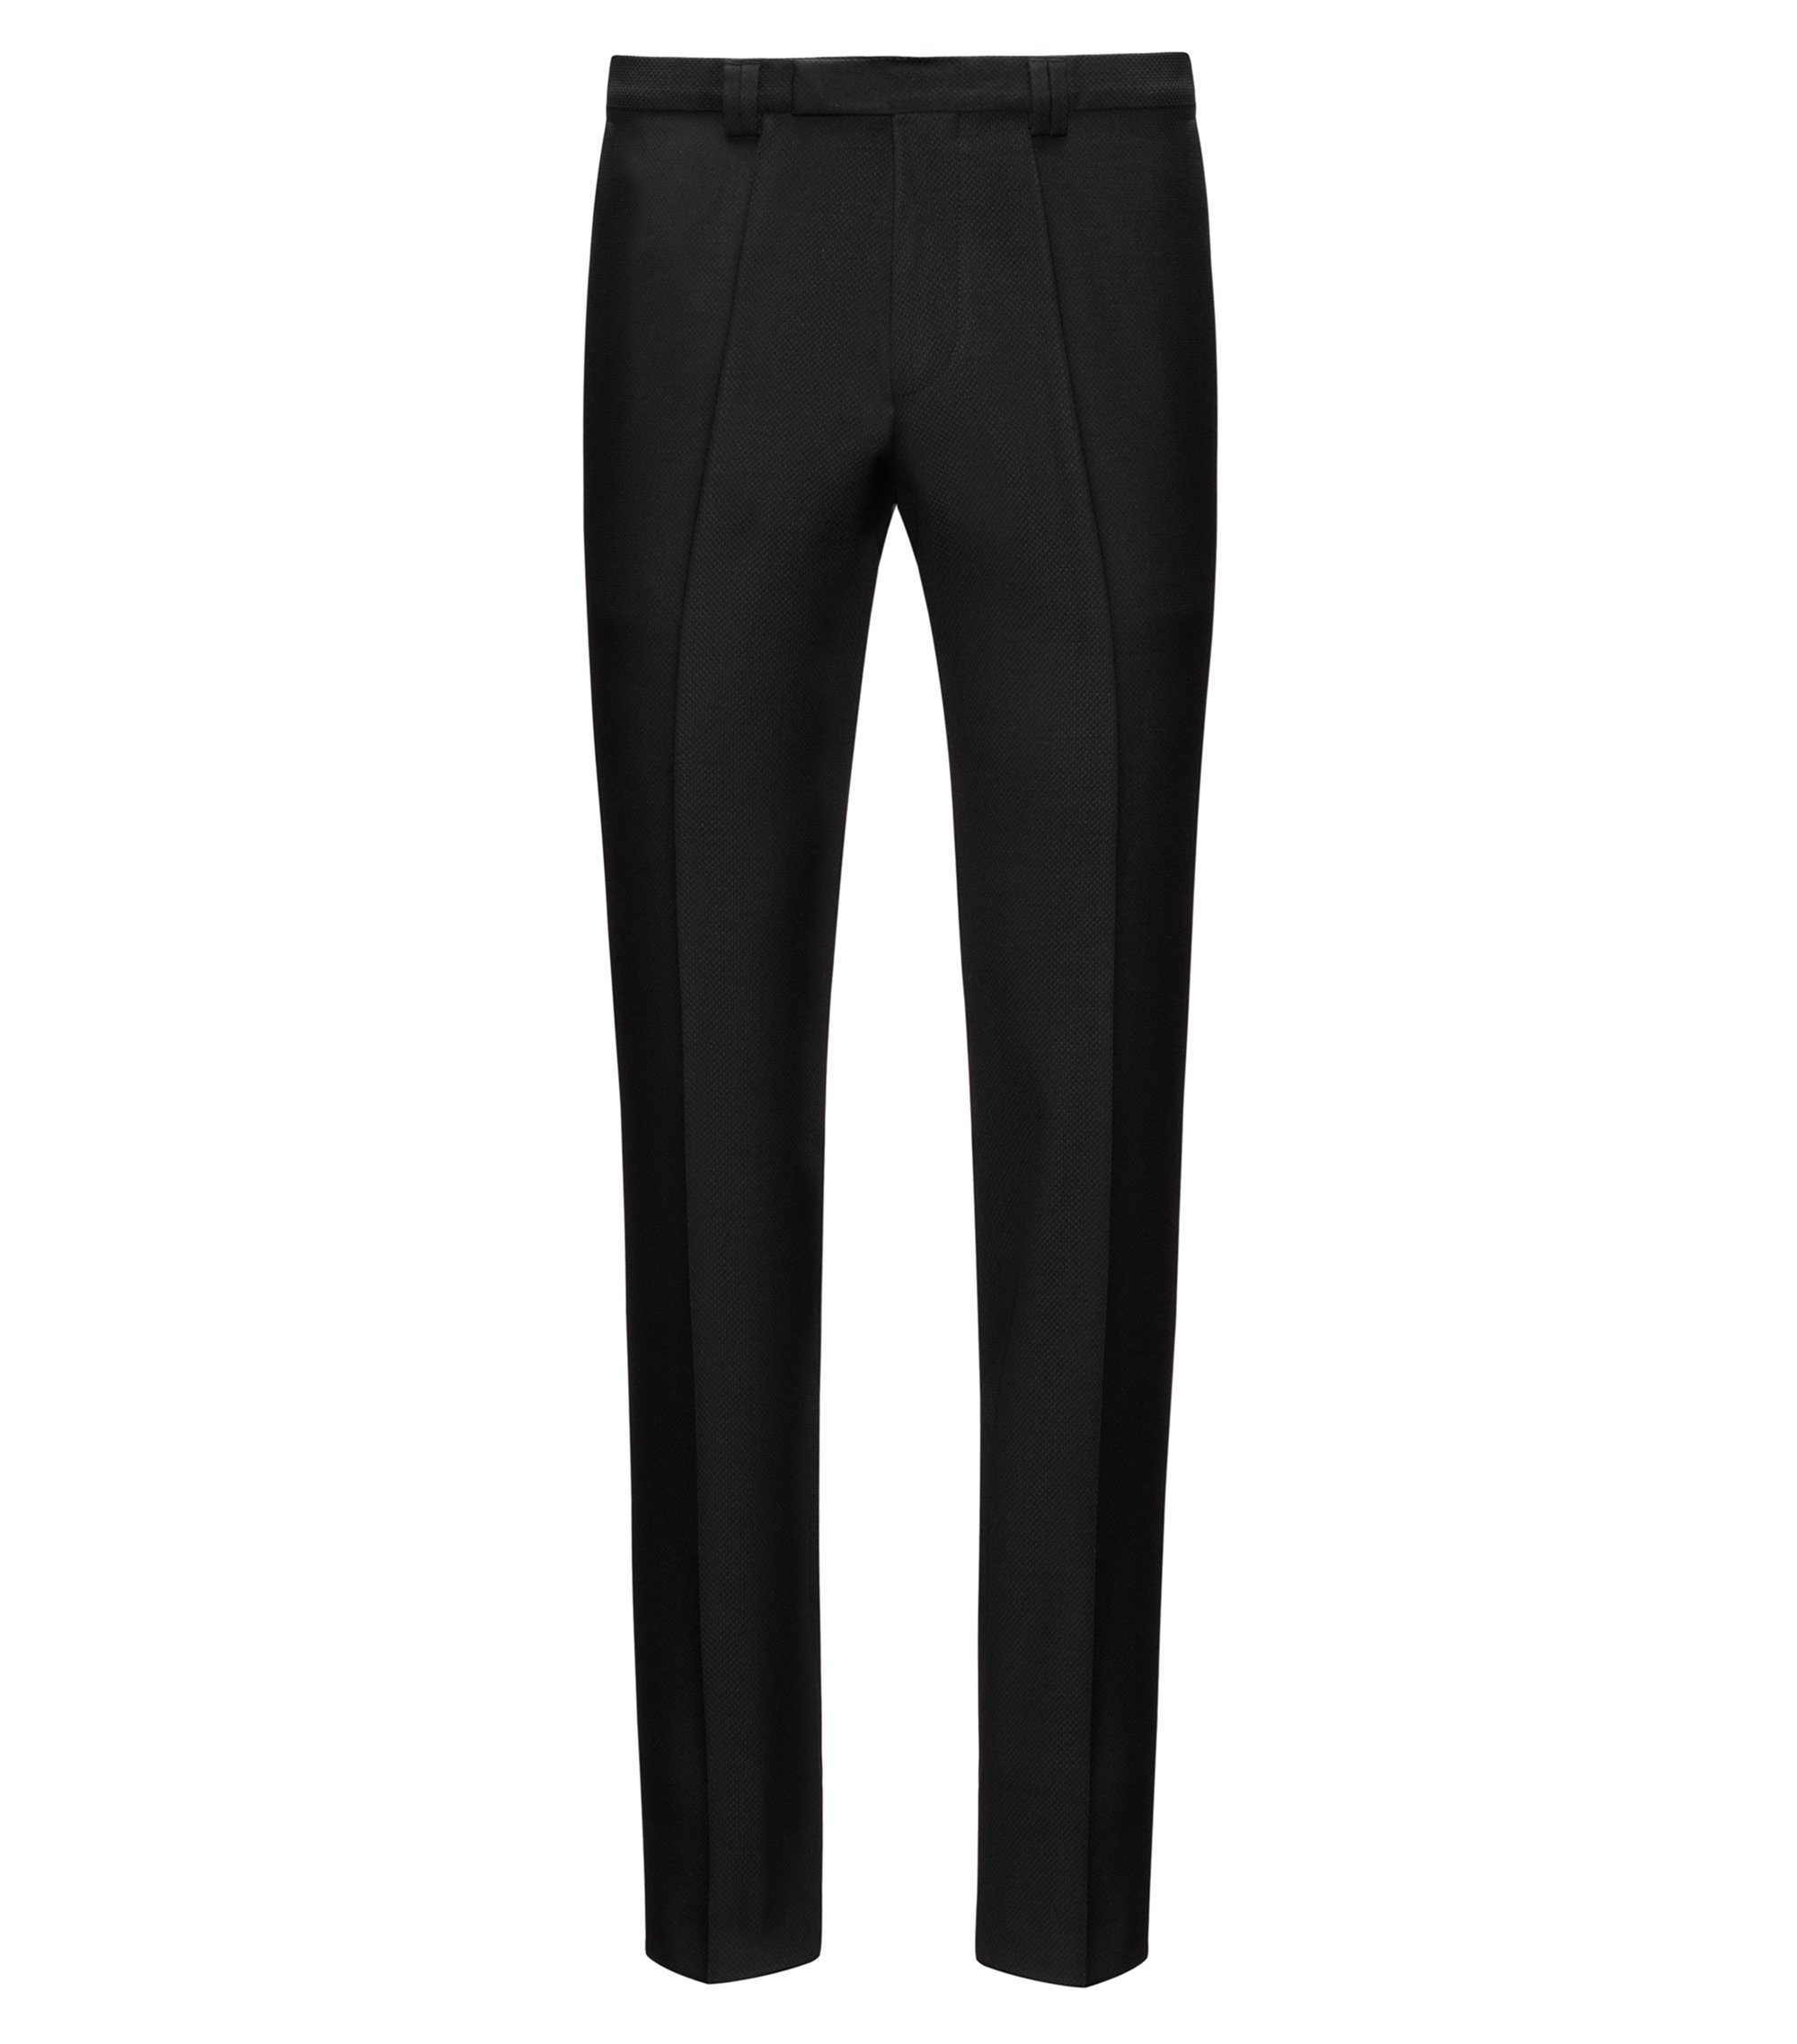 Diamond Woven Virgin Wool Pant, Extra Slim Fit | Hesten, Black